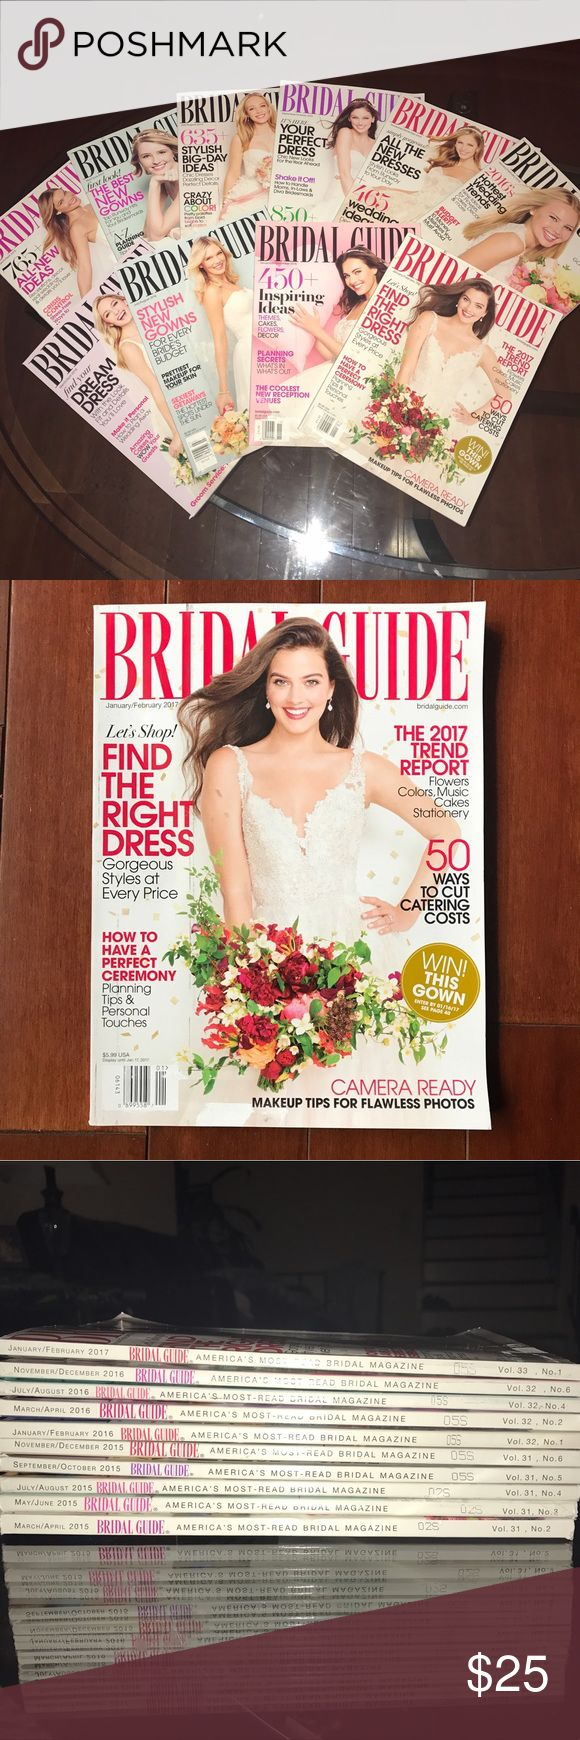 10 NEW bridal guide magazines 10 new bridal guide magazines. Originally $6 a piece! Newest issue I have is the January/February 2017 issue. Bought my mom a subscription to bridal guide thinking she would enjoy the beautiful wedding dresses featured each month in the magazines, turns out she isn't interested. Now I have tons of bridal guide magazines that are brand new and never even flipped through. 💜I ACCEPT OFFERS💜 Comment below any questions. (Brand is used for exposure) David's Bridal…